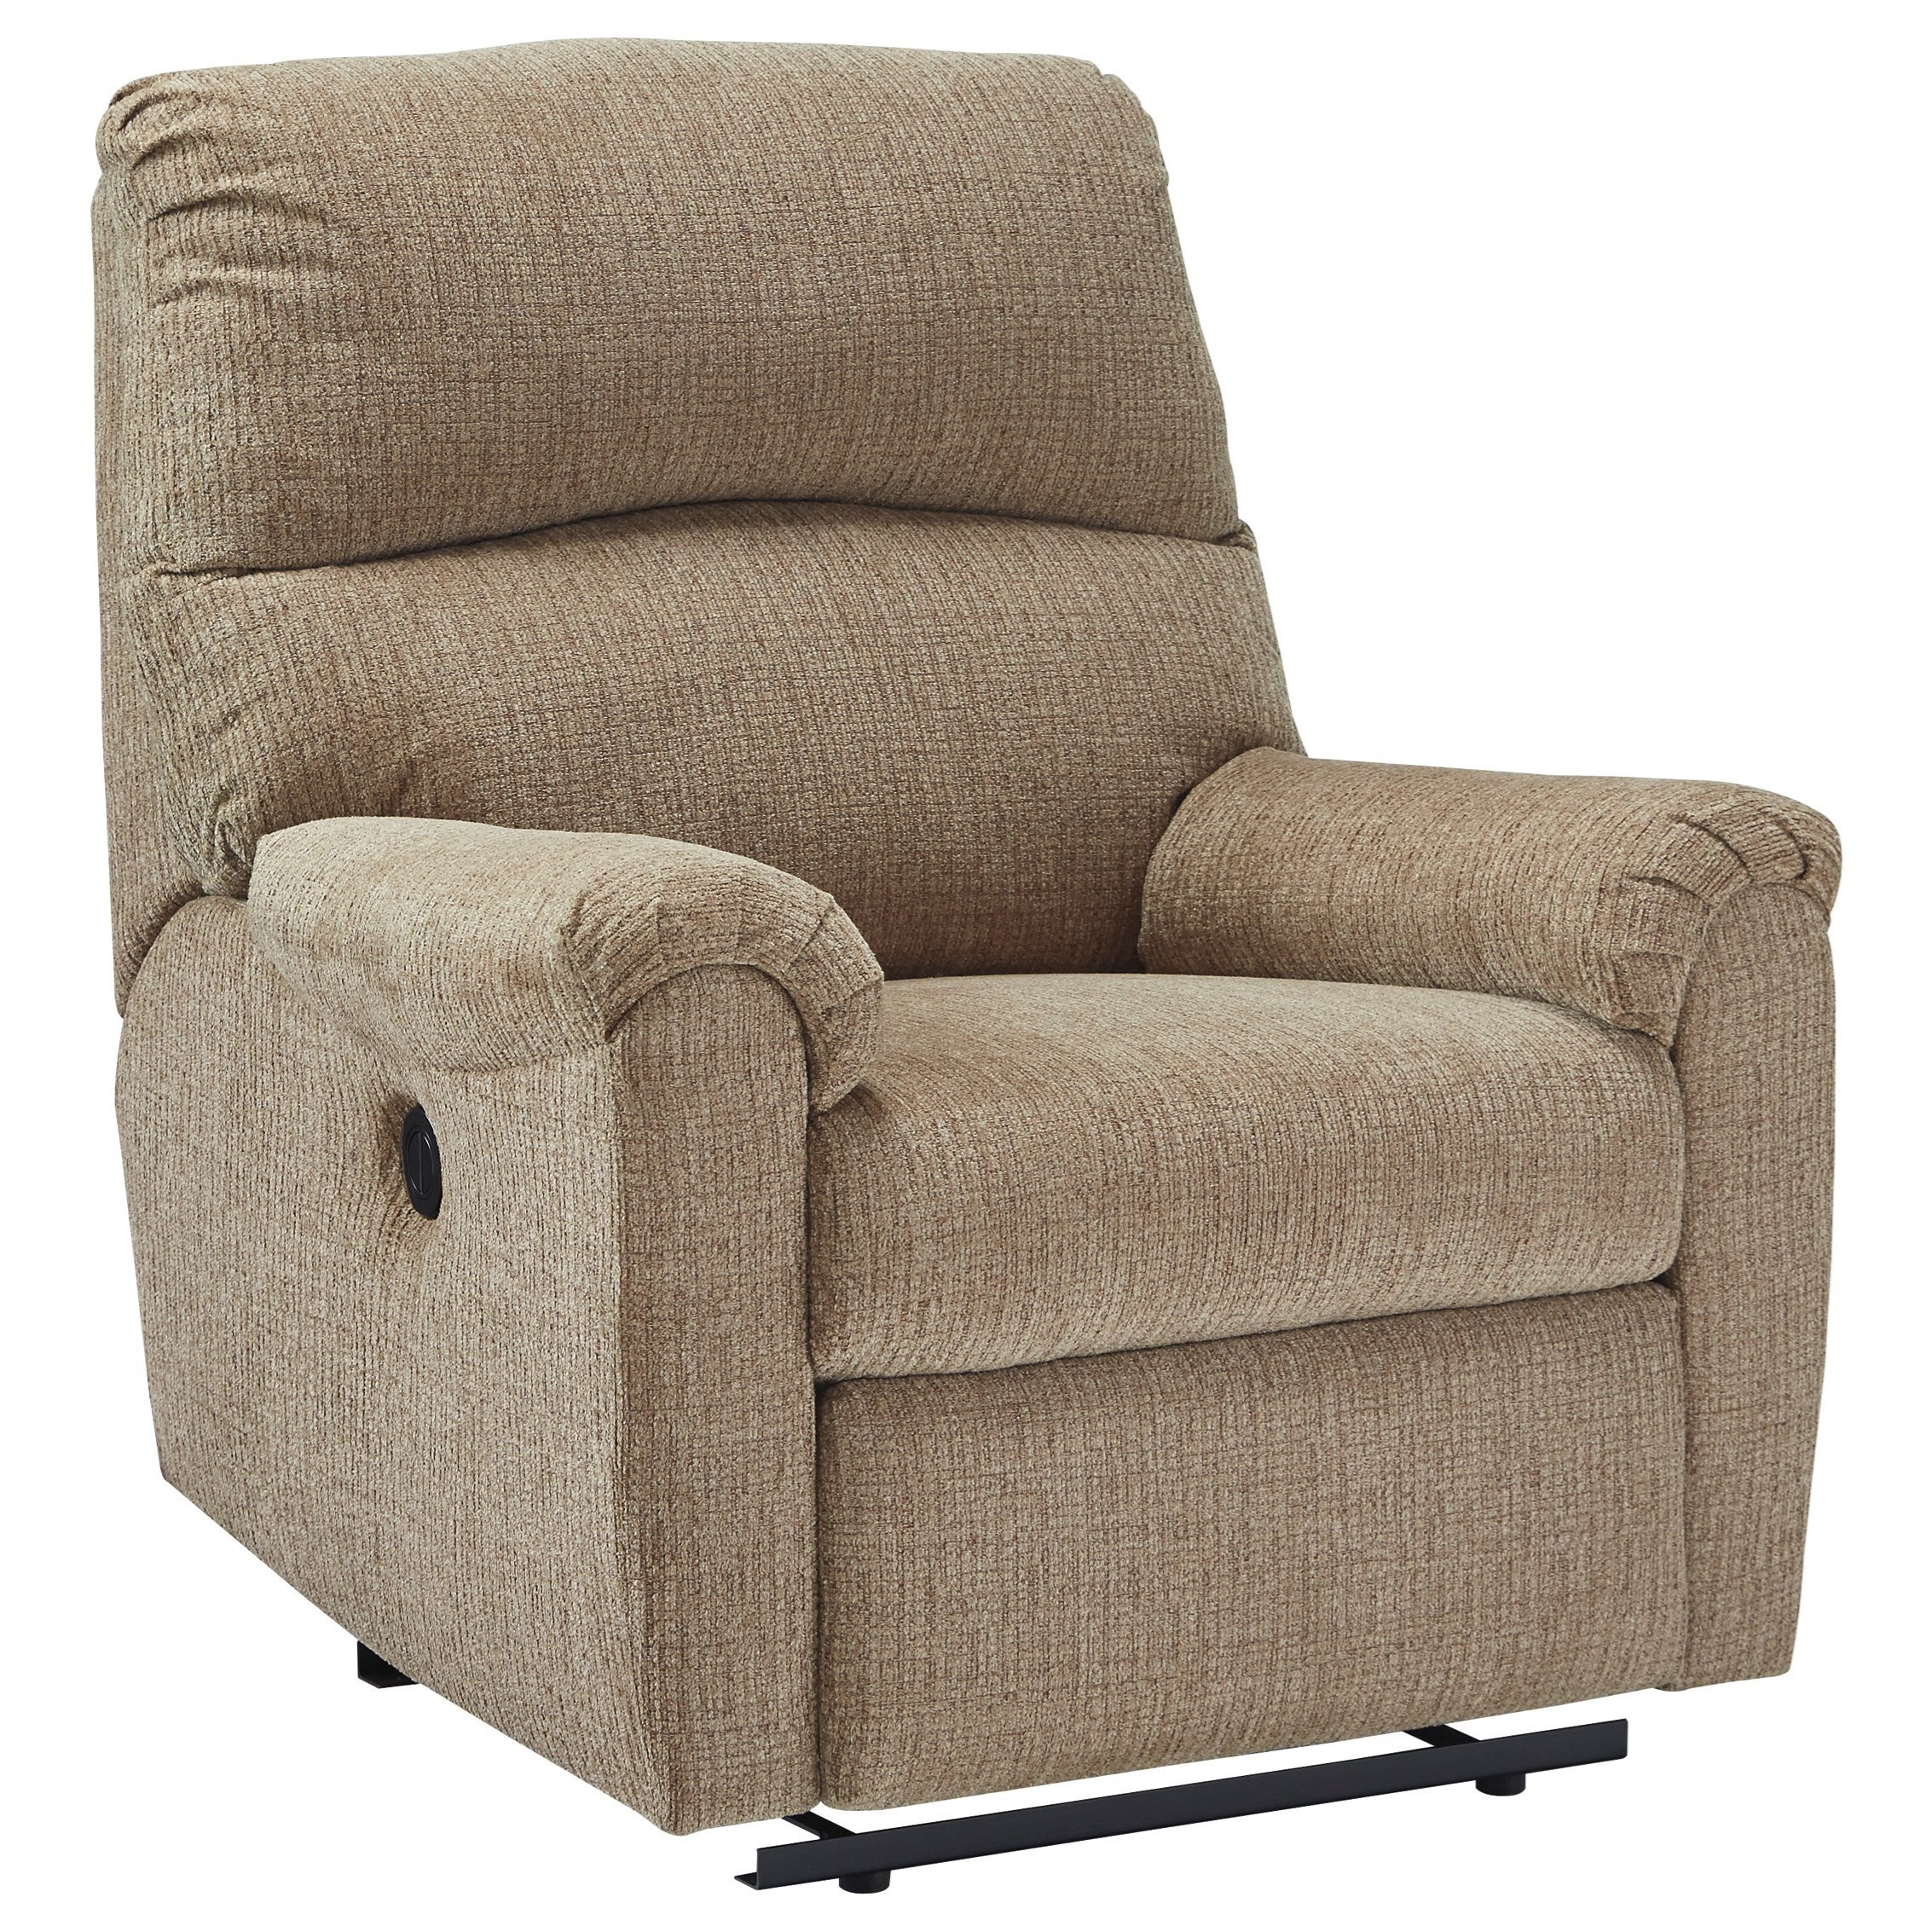 Signature Design by Ashley McTeer Power Recliner - Item Number: 7590906